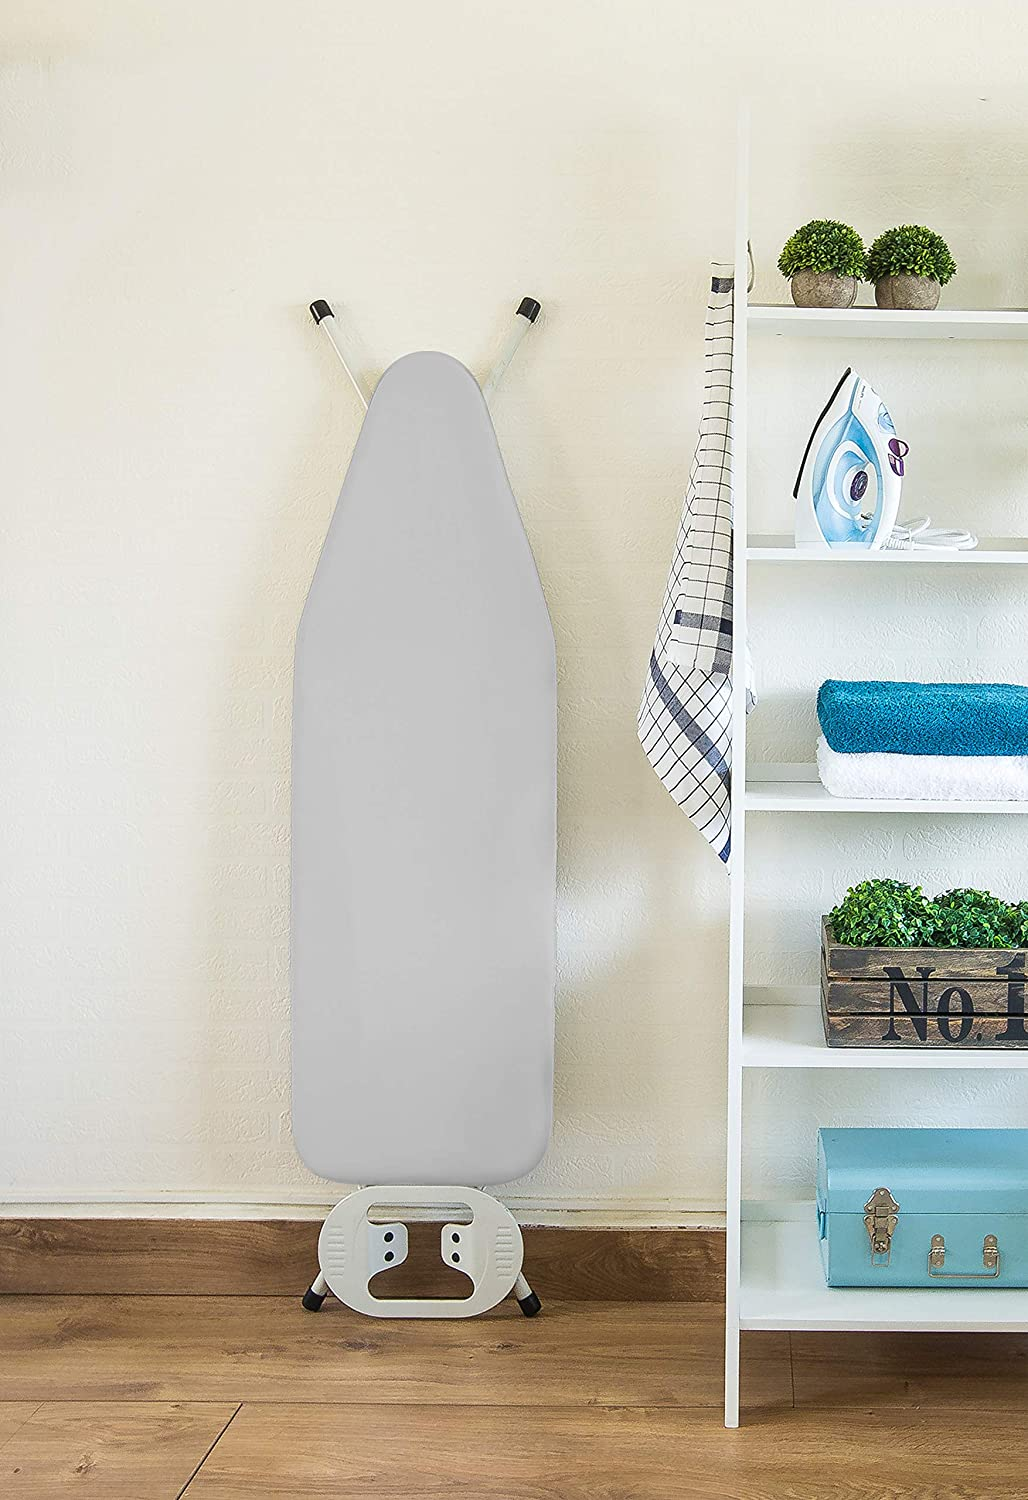 Heat Reflective 3 Velcro Fasteners Encasa Homes Metallised Ironing Board Cover Silver Super Luxury with Foam Bungee Elasticated Scorch Resistant Fits Standard Large Boards 15x54 Felt PAD